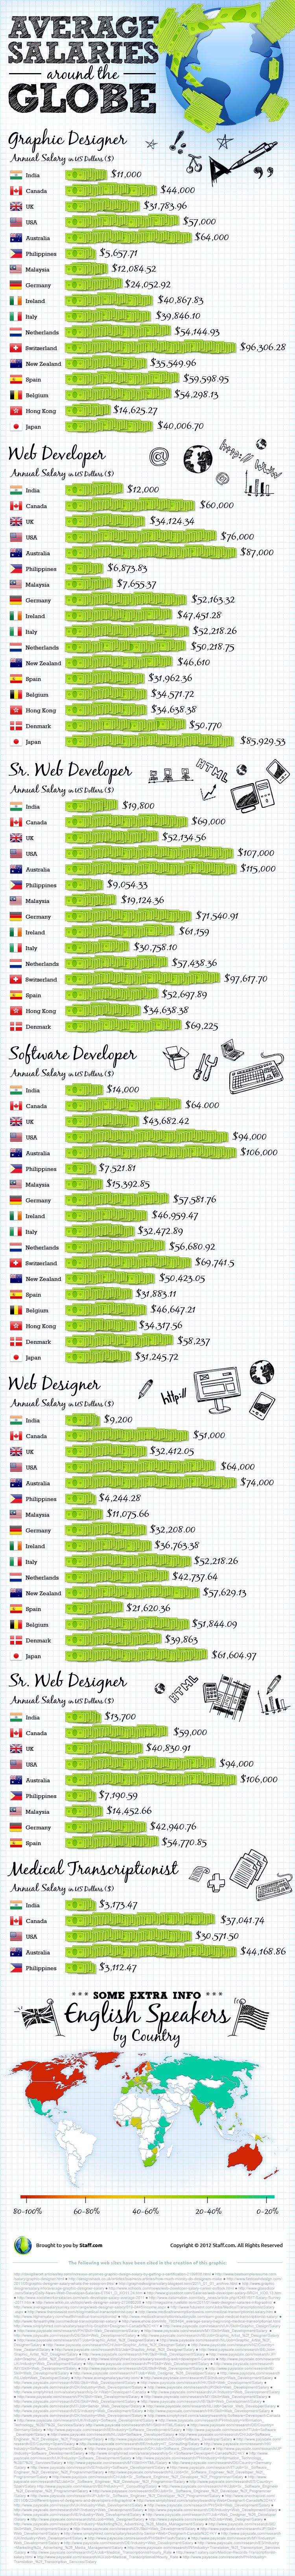 Average Web Developer Salary Around The World Infographic Web Developer Salary Infographic Web Development